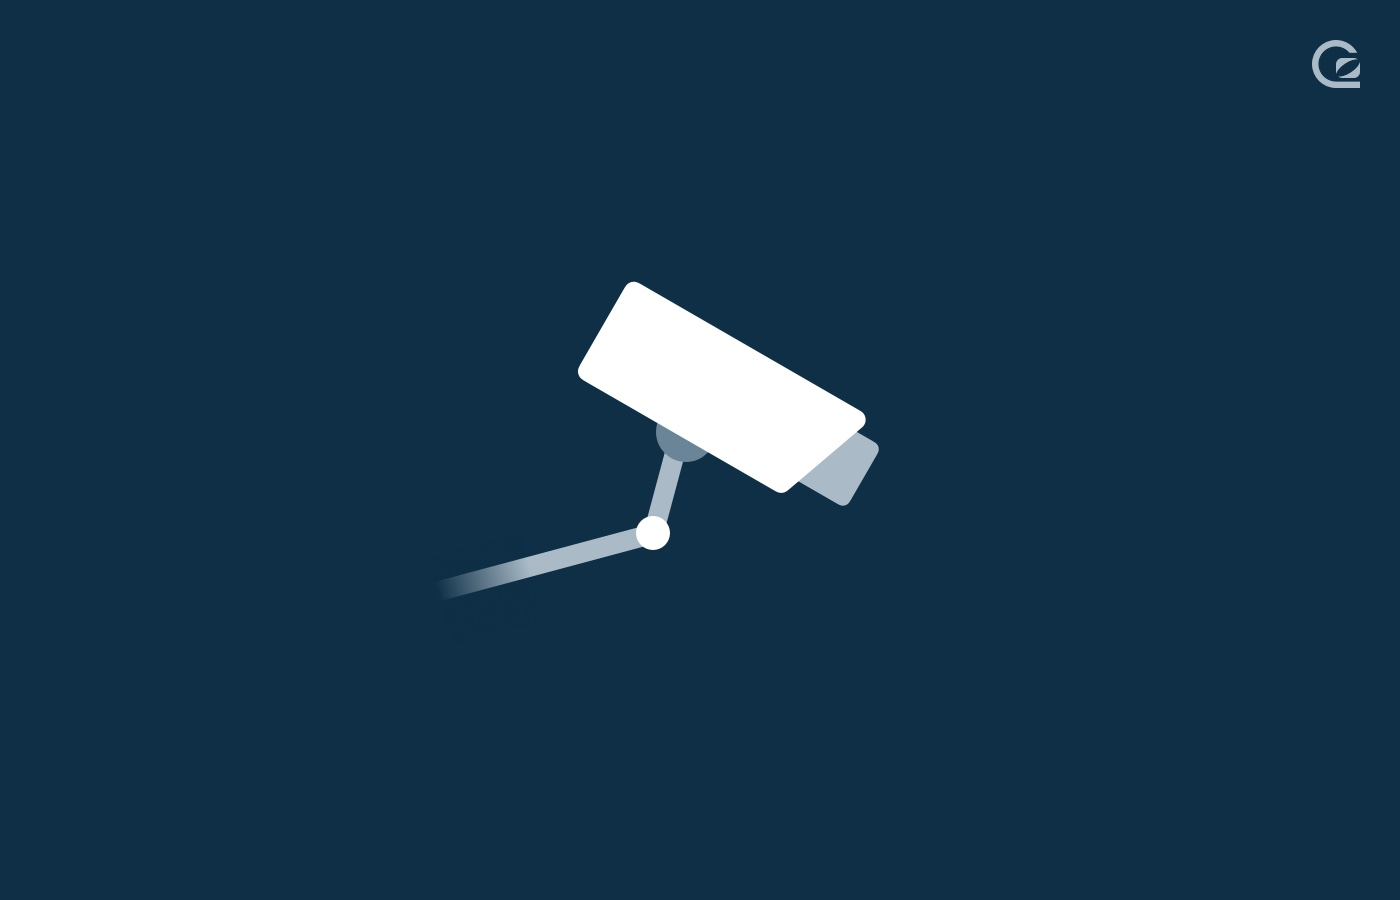 Online tracking and privacy